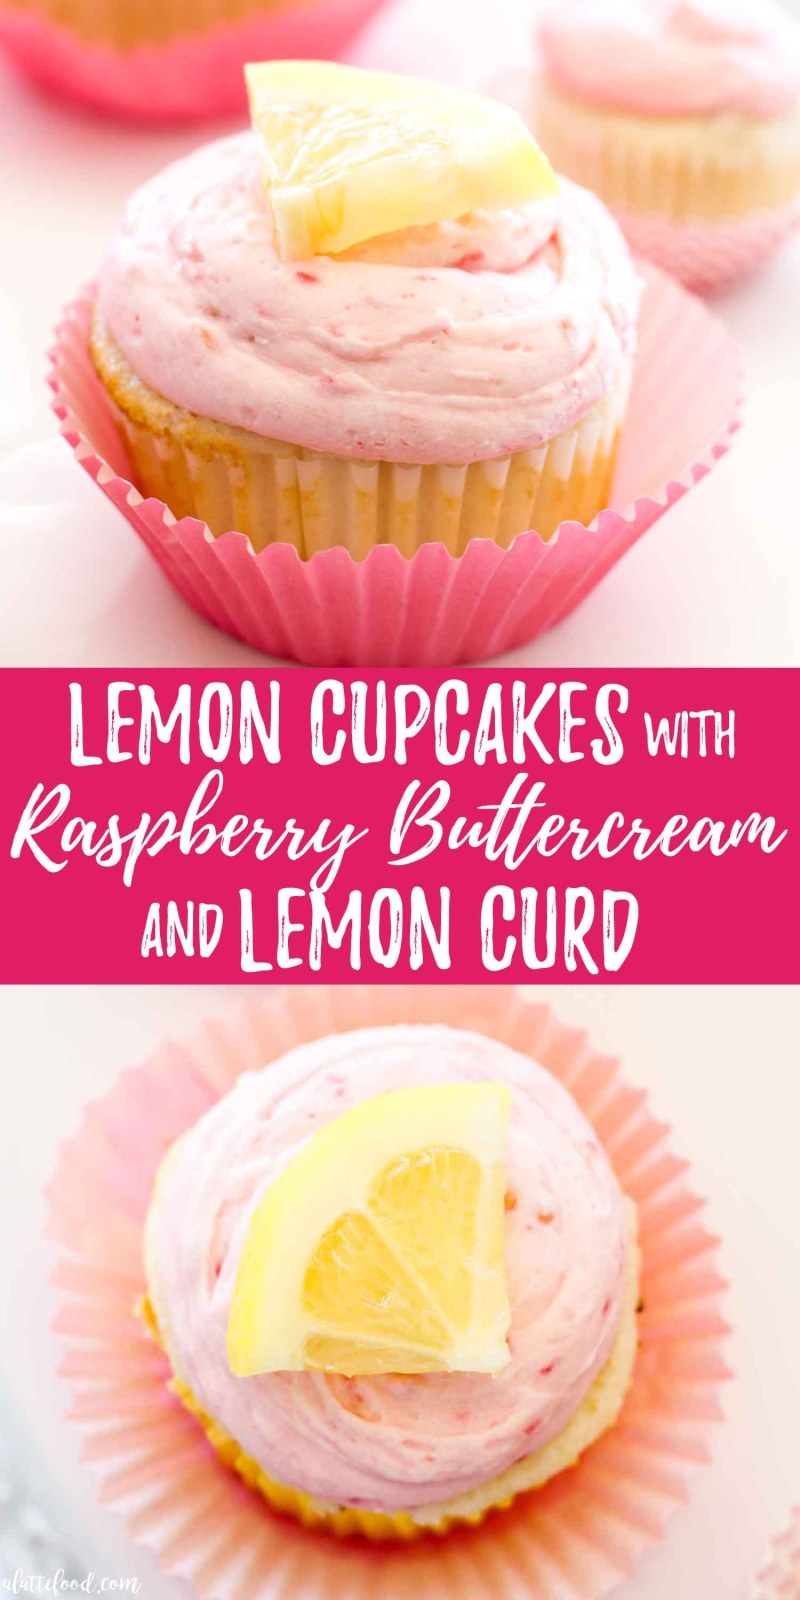 lemon cupcakes with raspberry buttercream collage photo with text